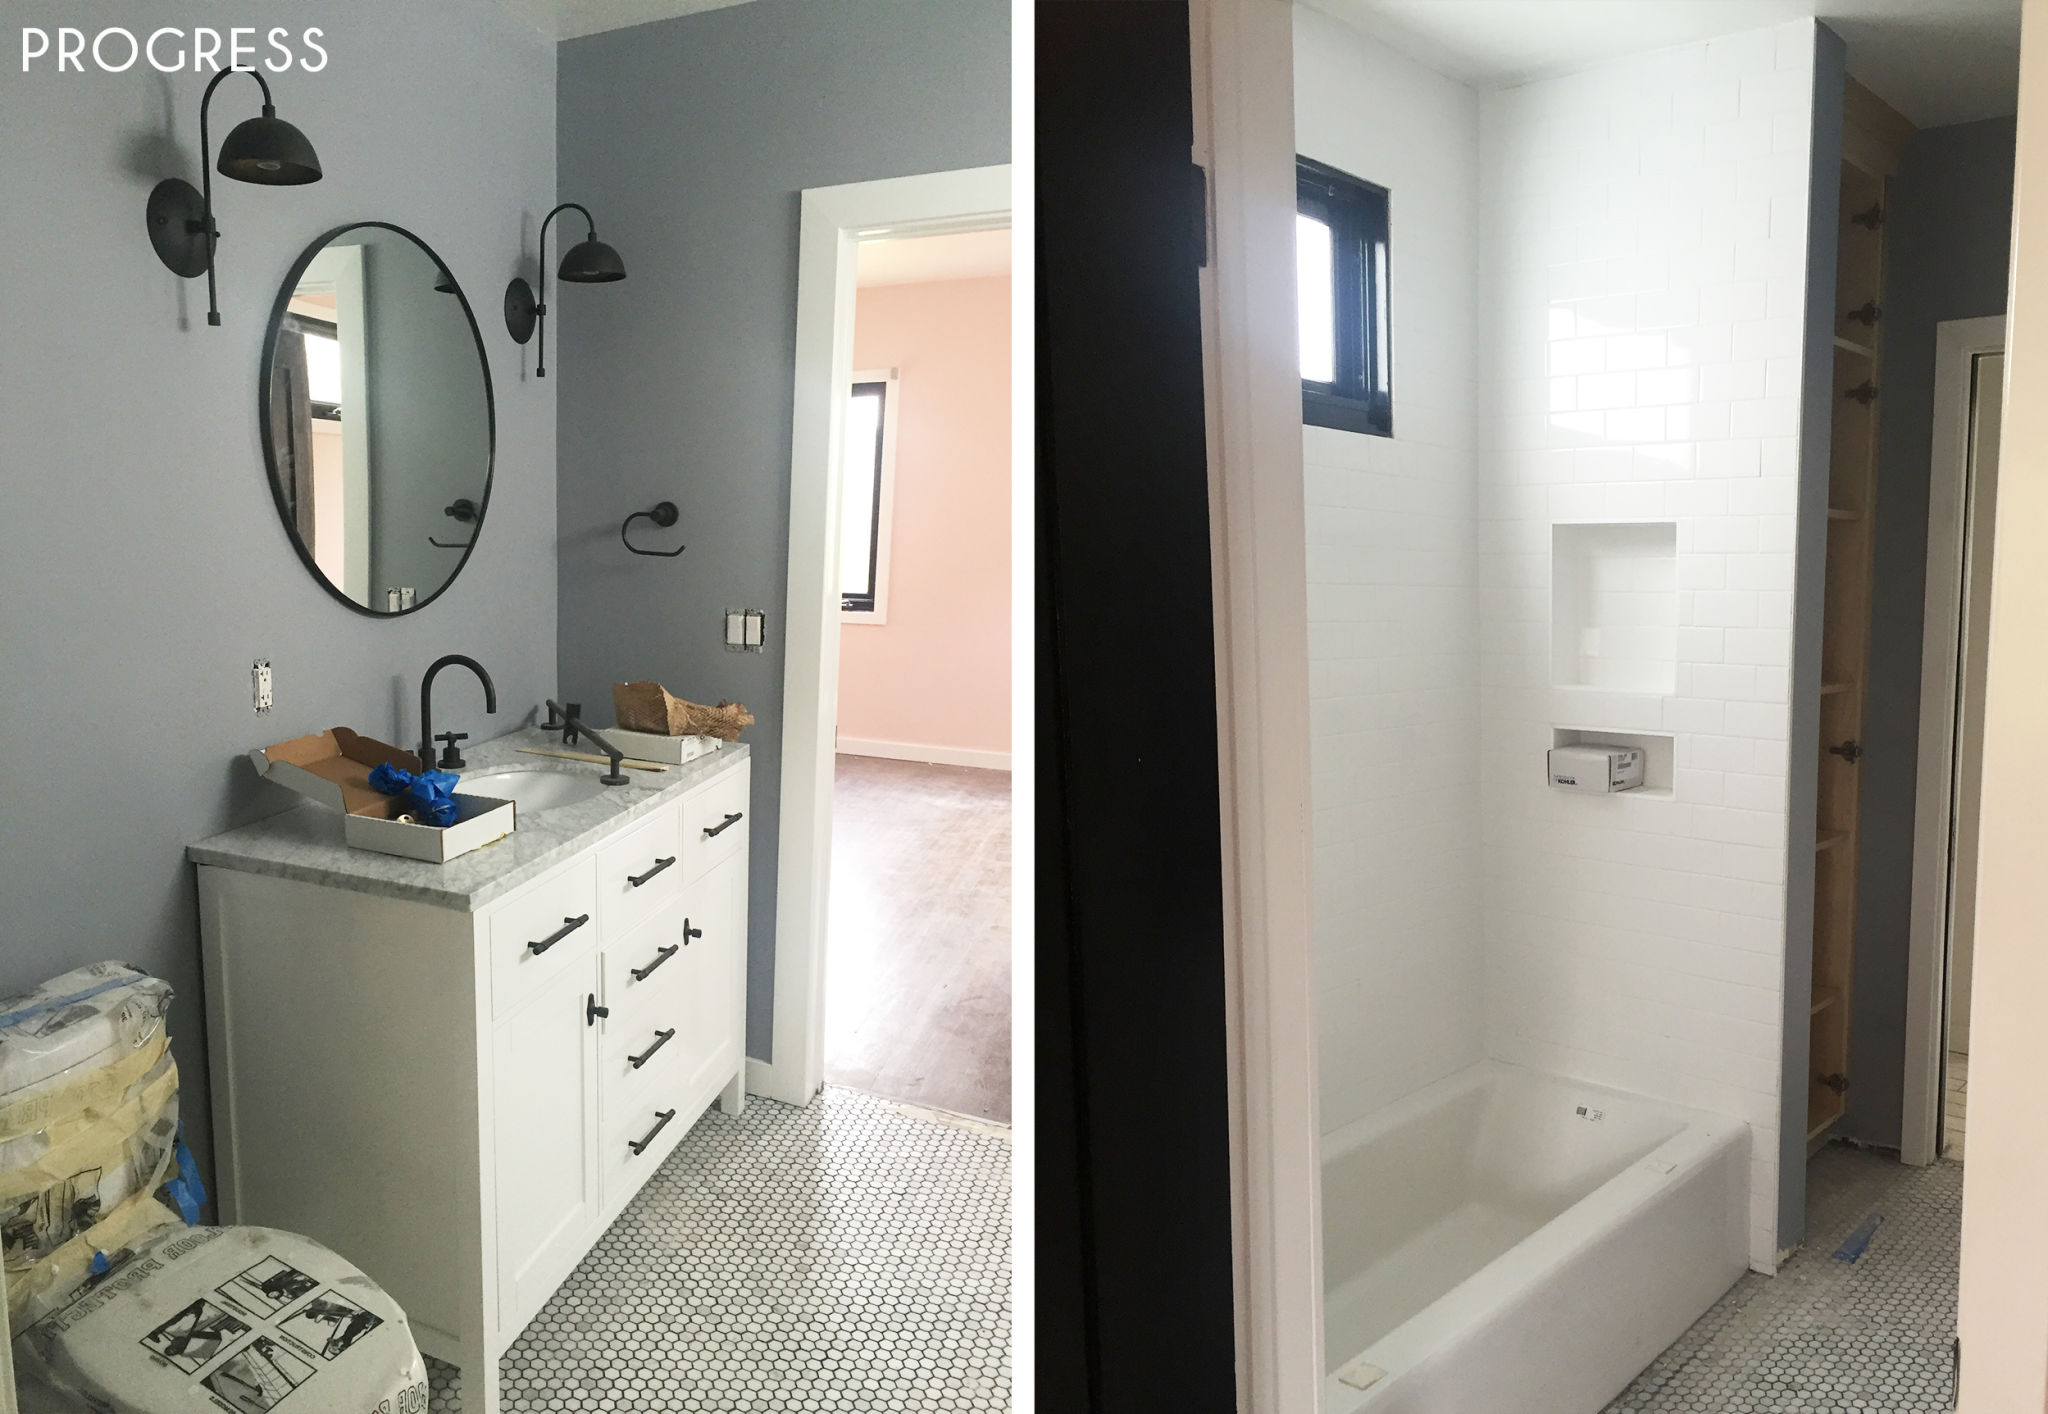 Ginny_Macdonald_Bathroom_Refresh_Modern-Traditional_Progress